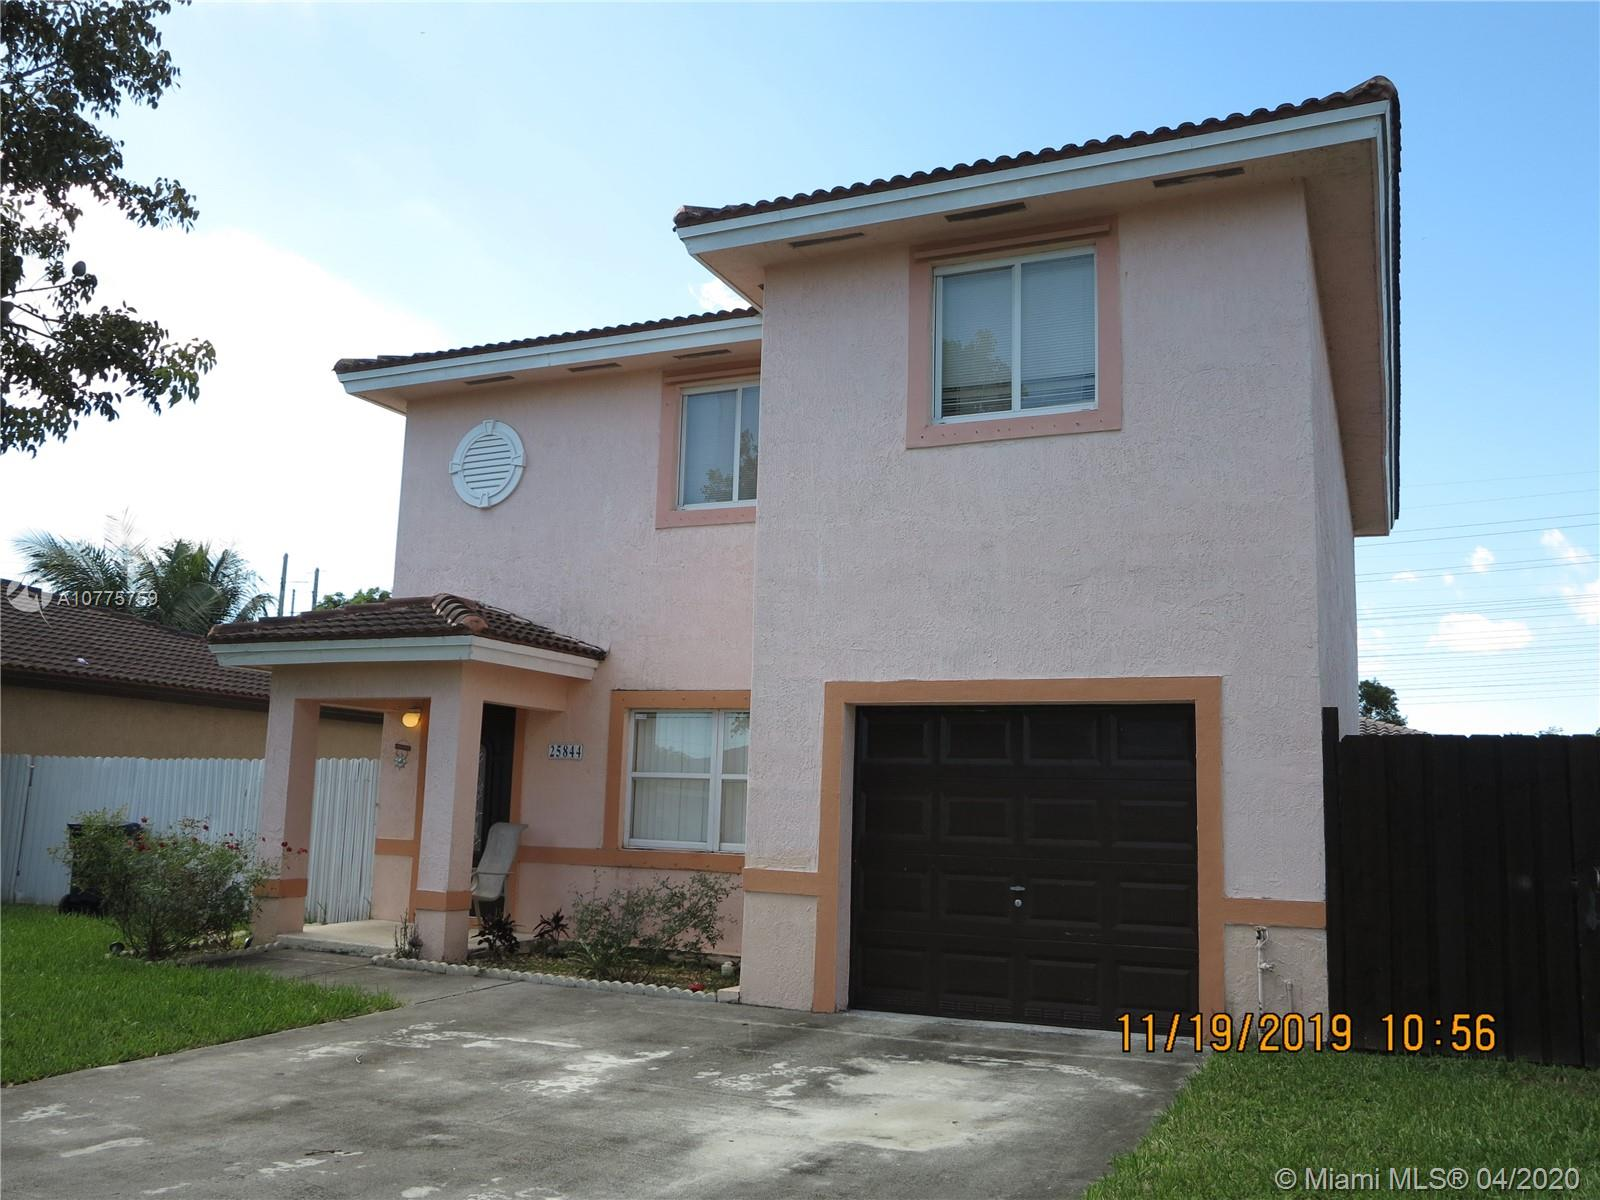 25844 SW 128th Ave, Homestead, FL 33032 - Homestead, FL real estate listing